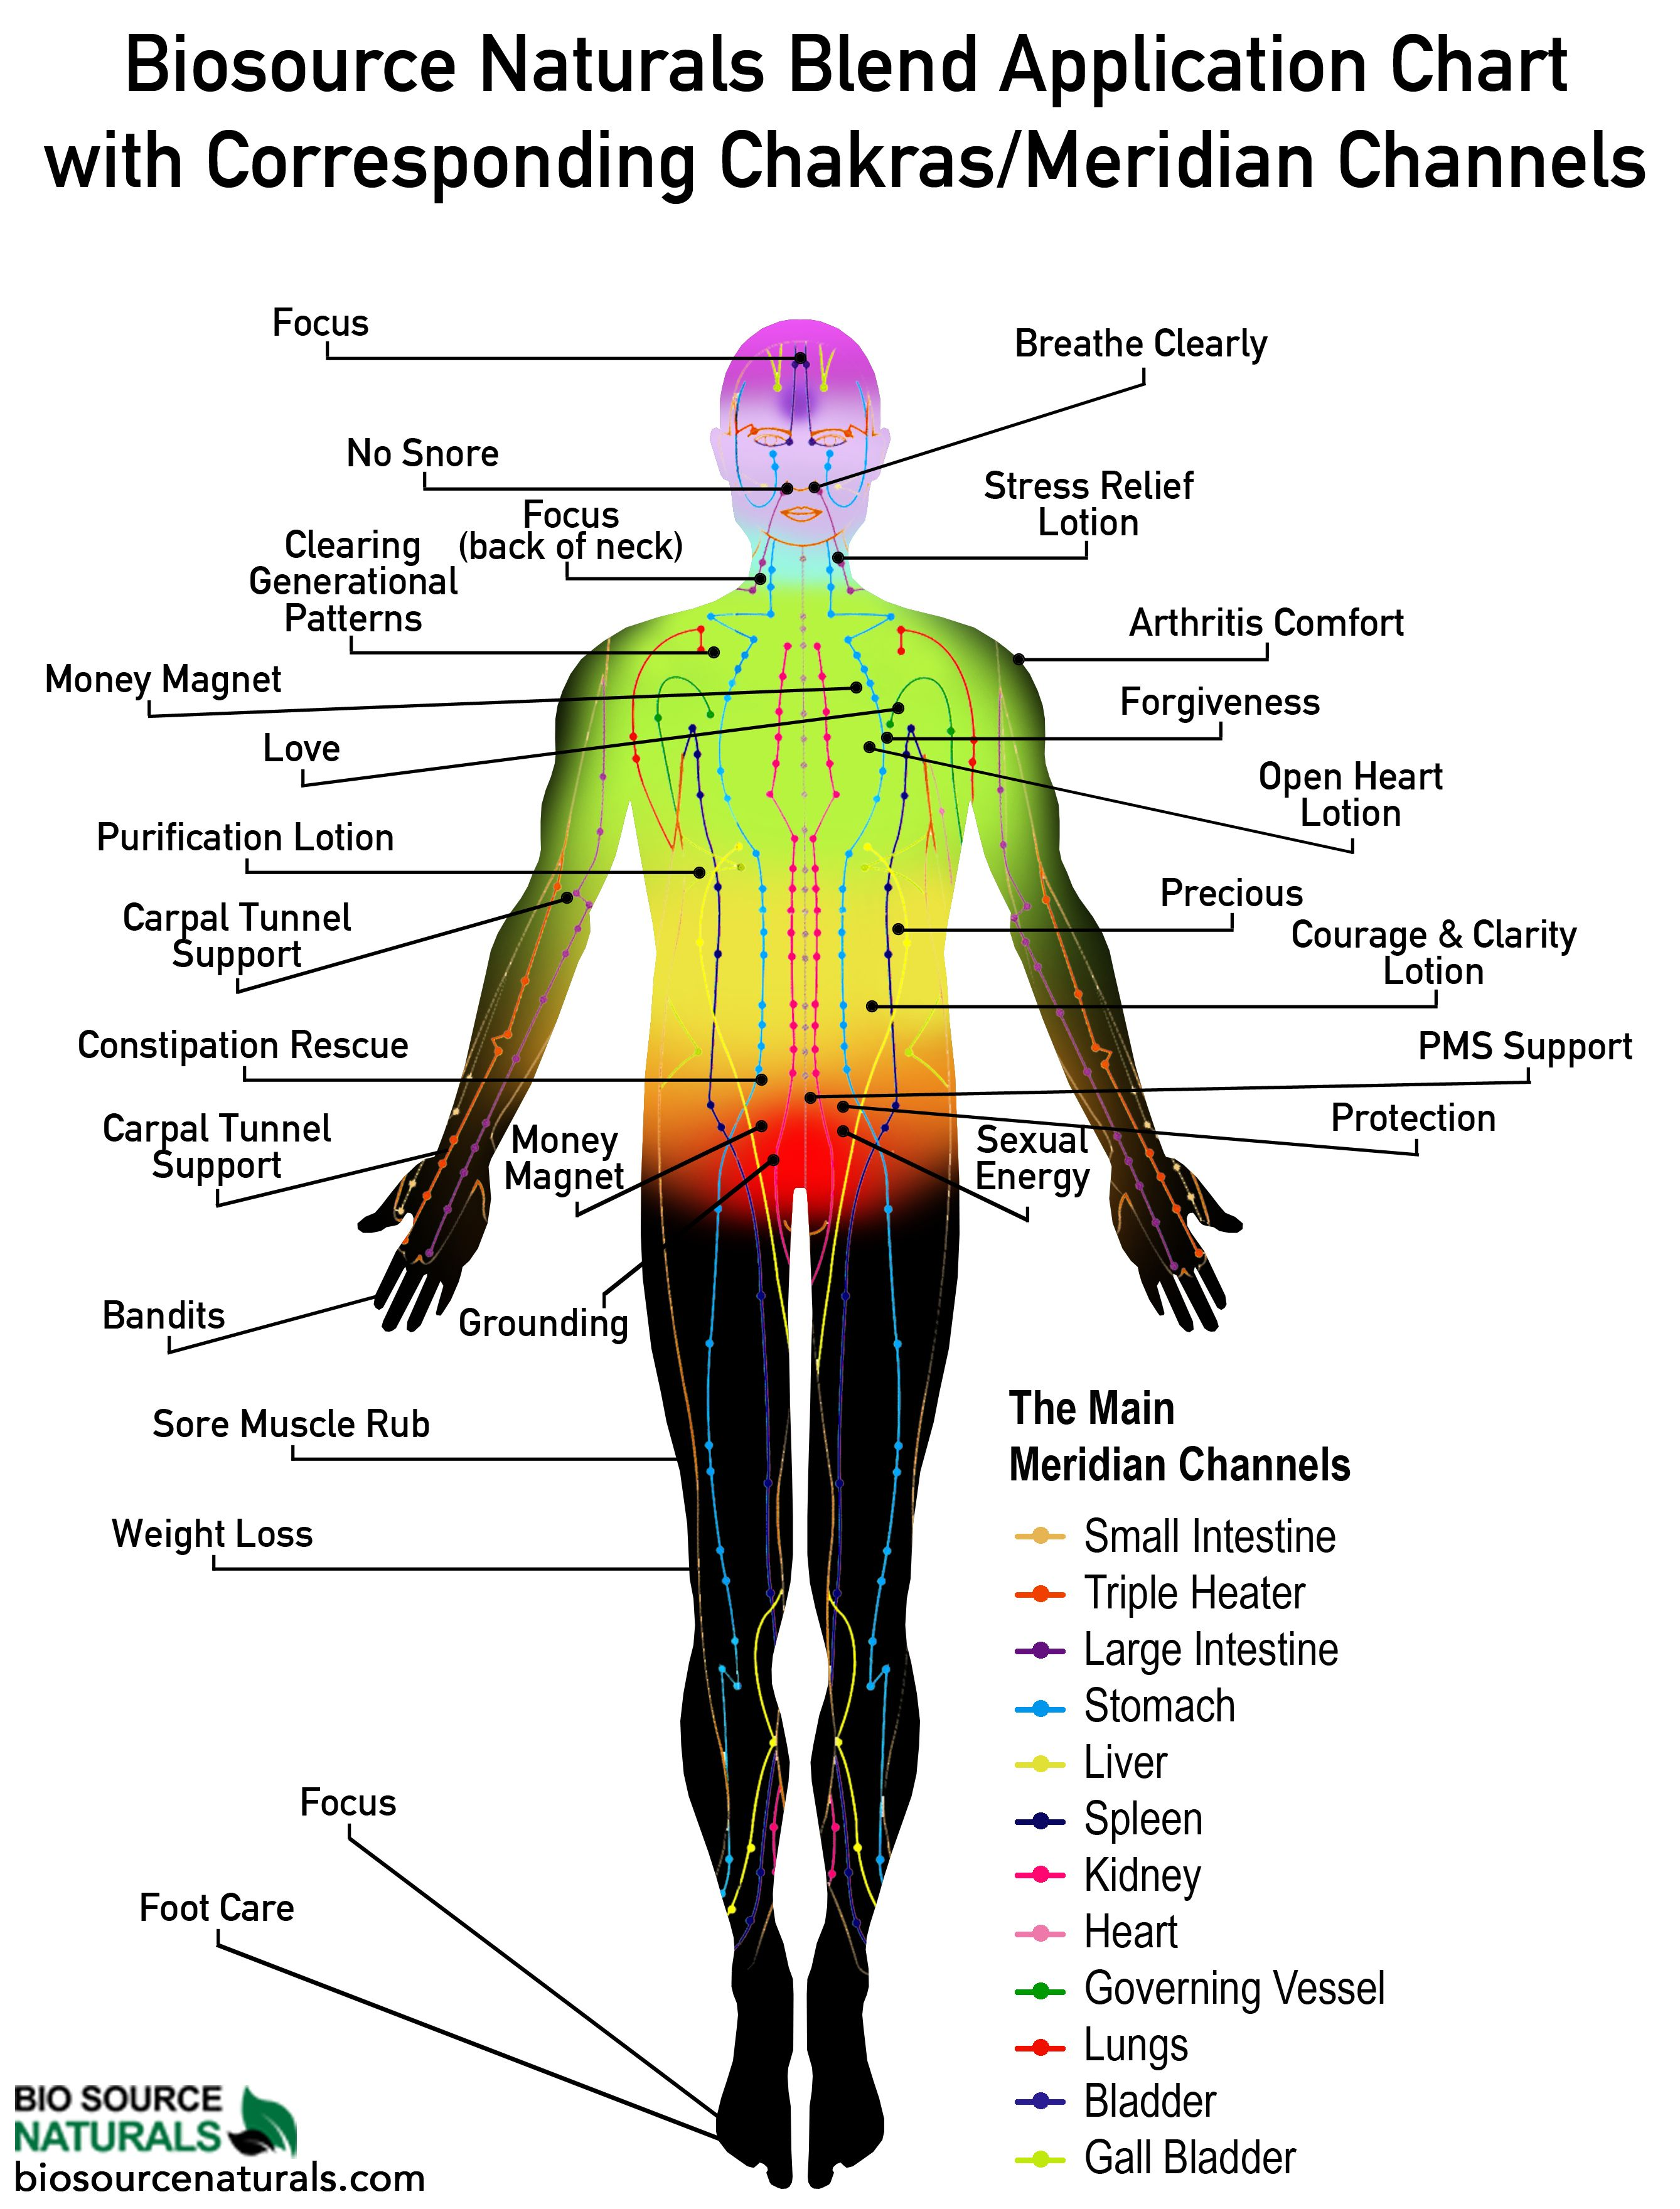 Physical Benefits Reference Chart